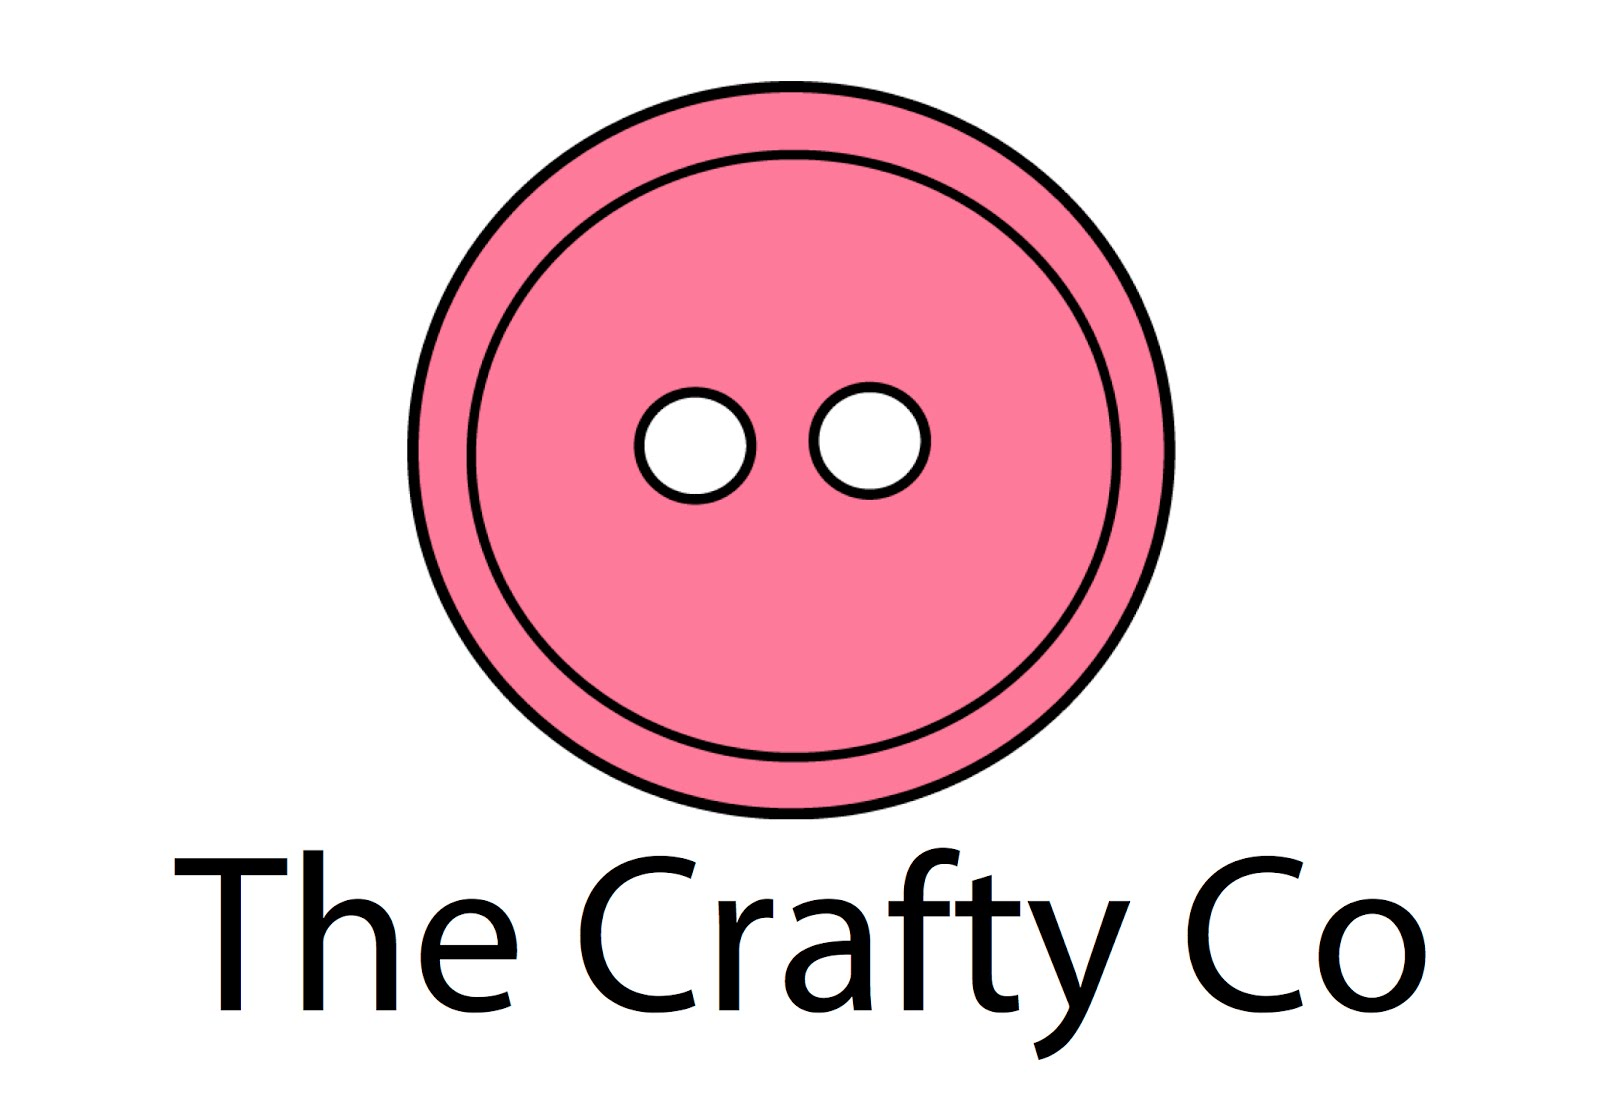 The Crafty Co.